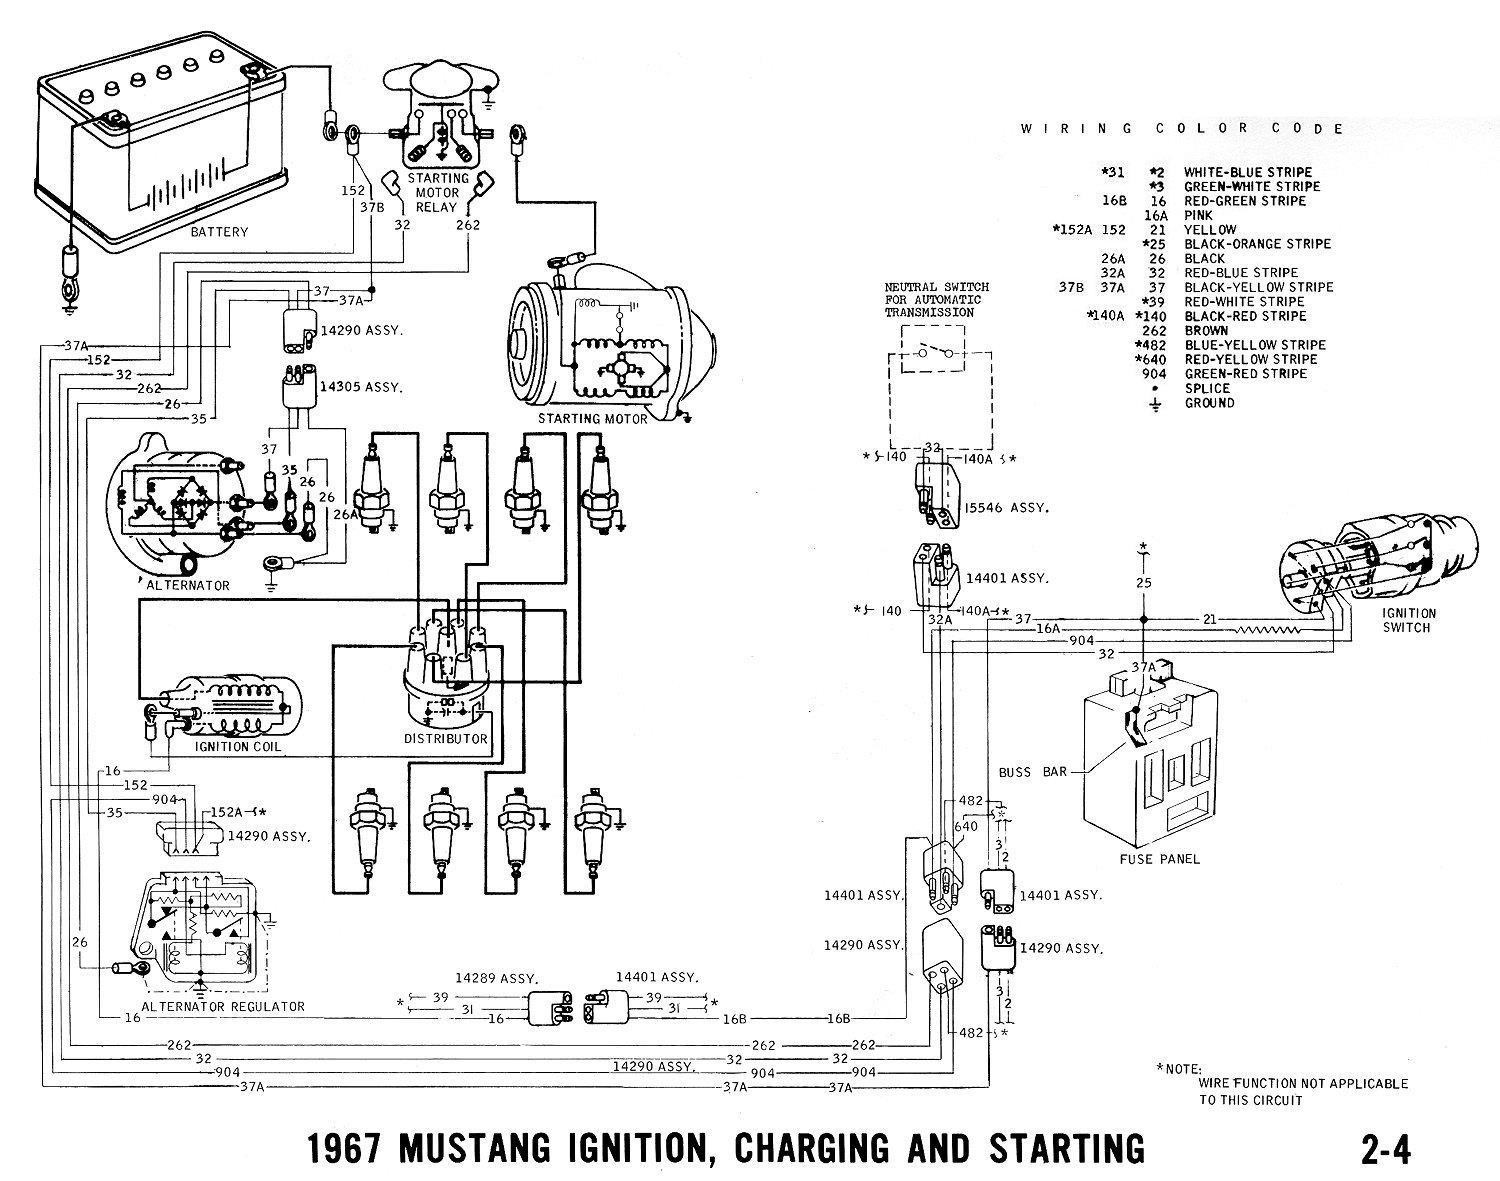 hight resolution of 84 mustang engine diagram wiring diagram used84 mustang engine diagram wiring diagram load 84 mustang engine